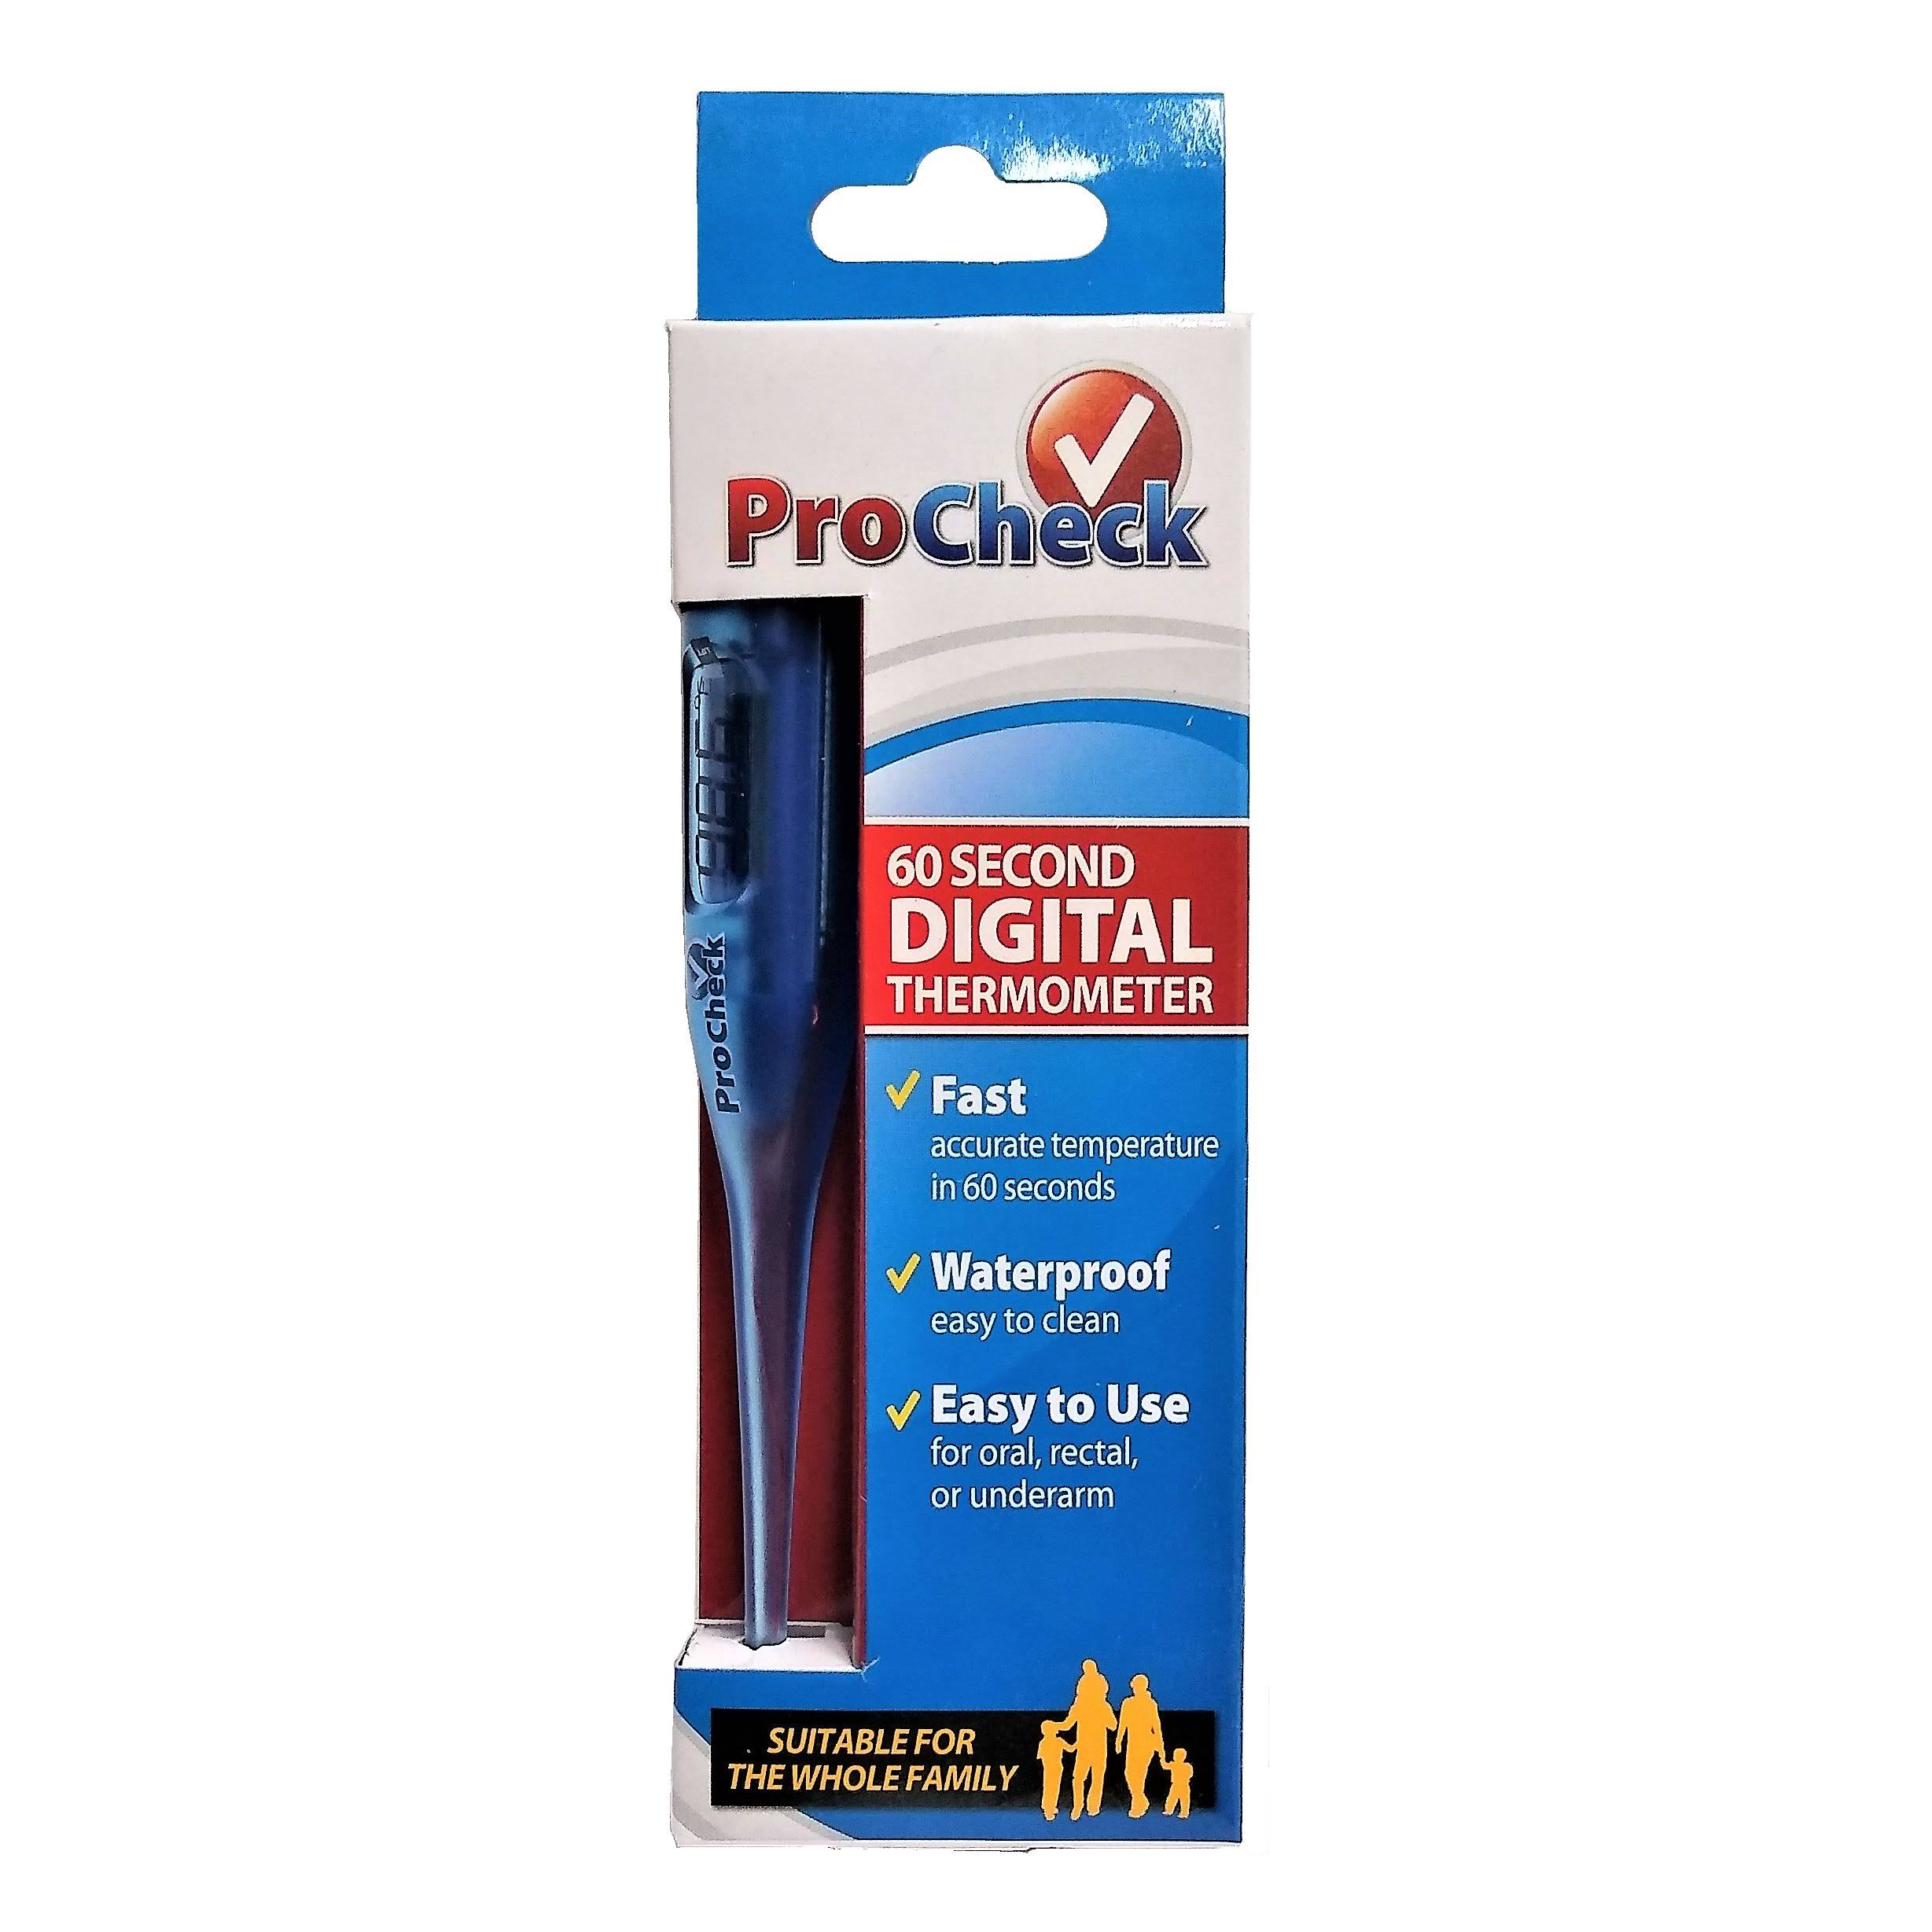 ProCheck 60 Second Digital Thermometer